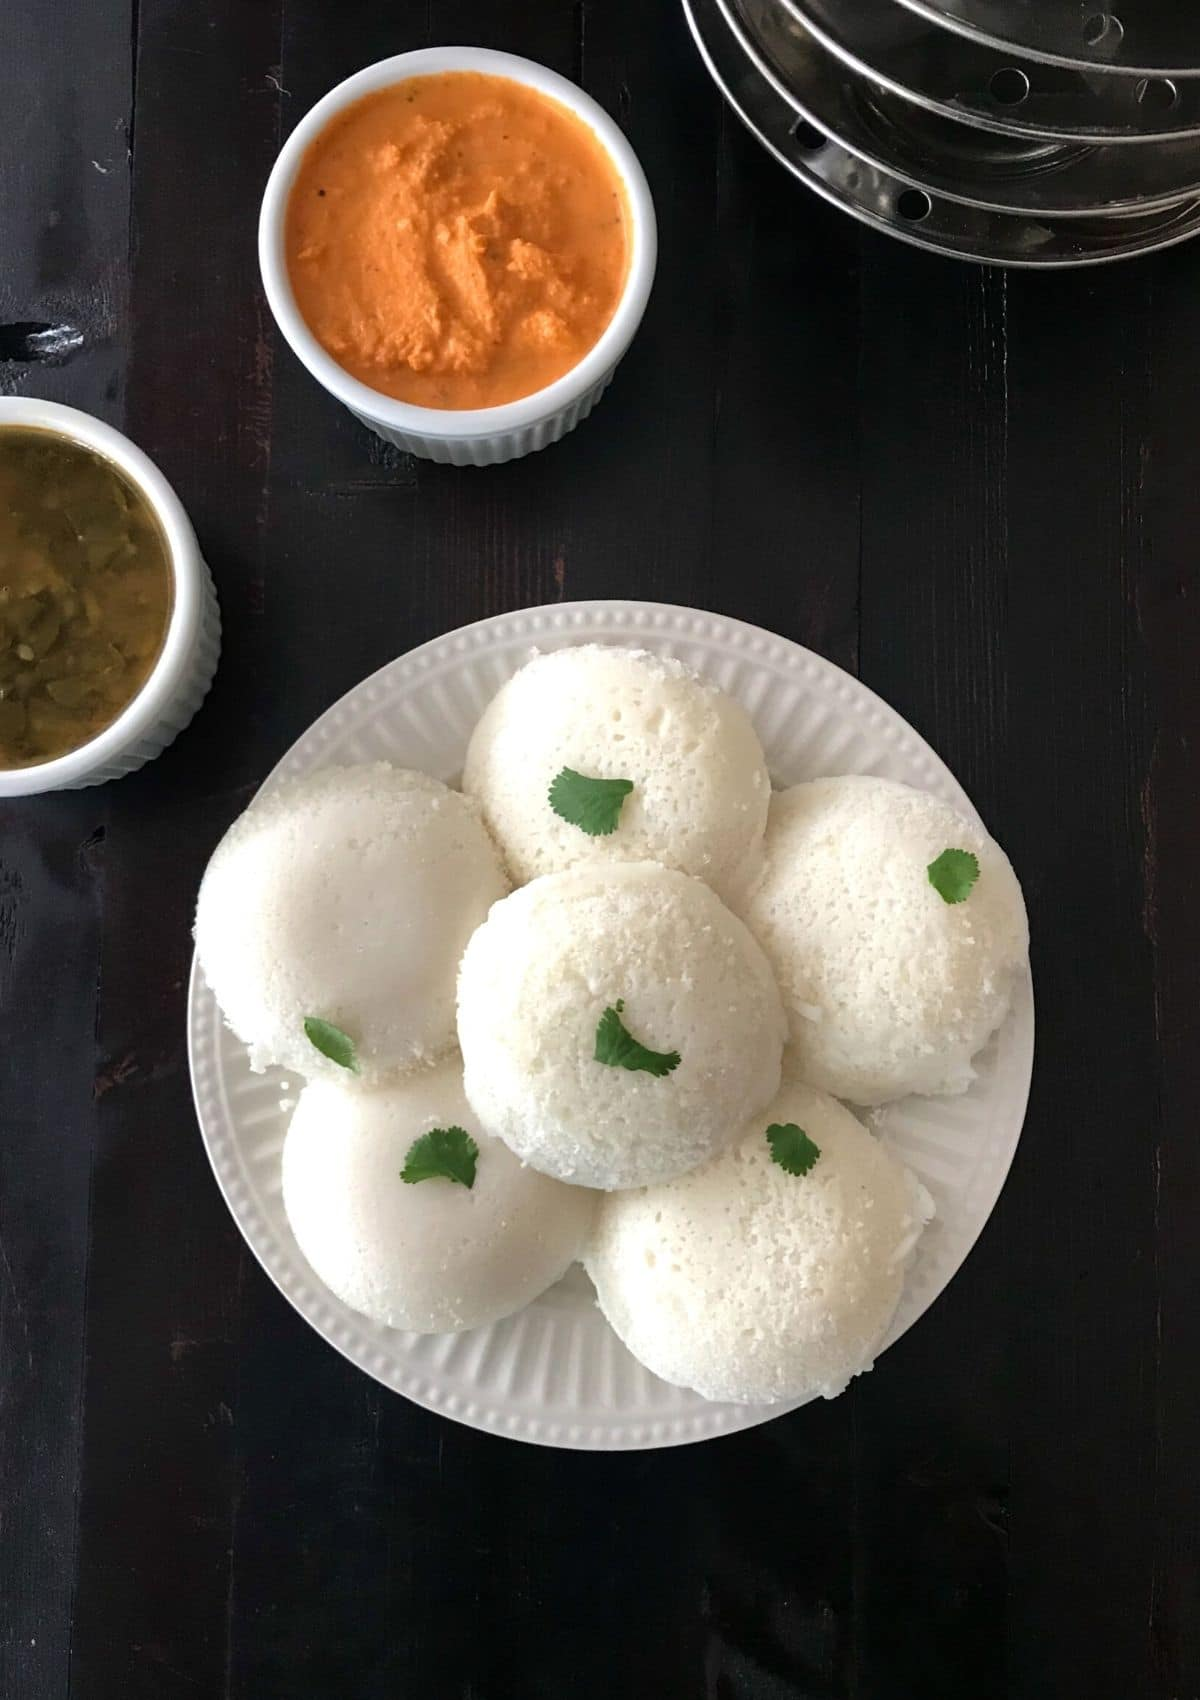 A plate with idli and cup of chutney